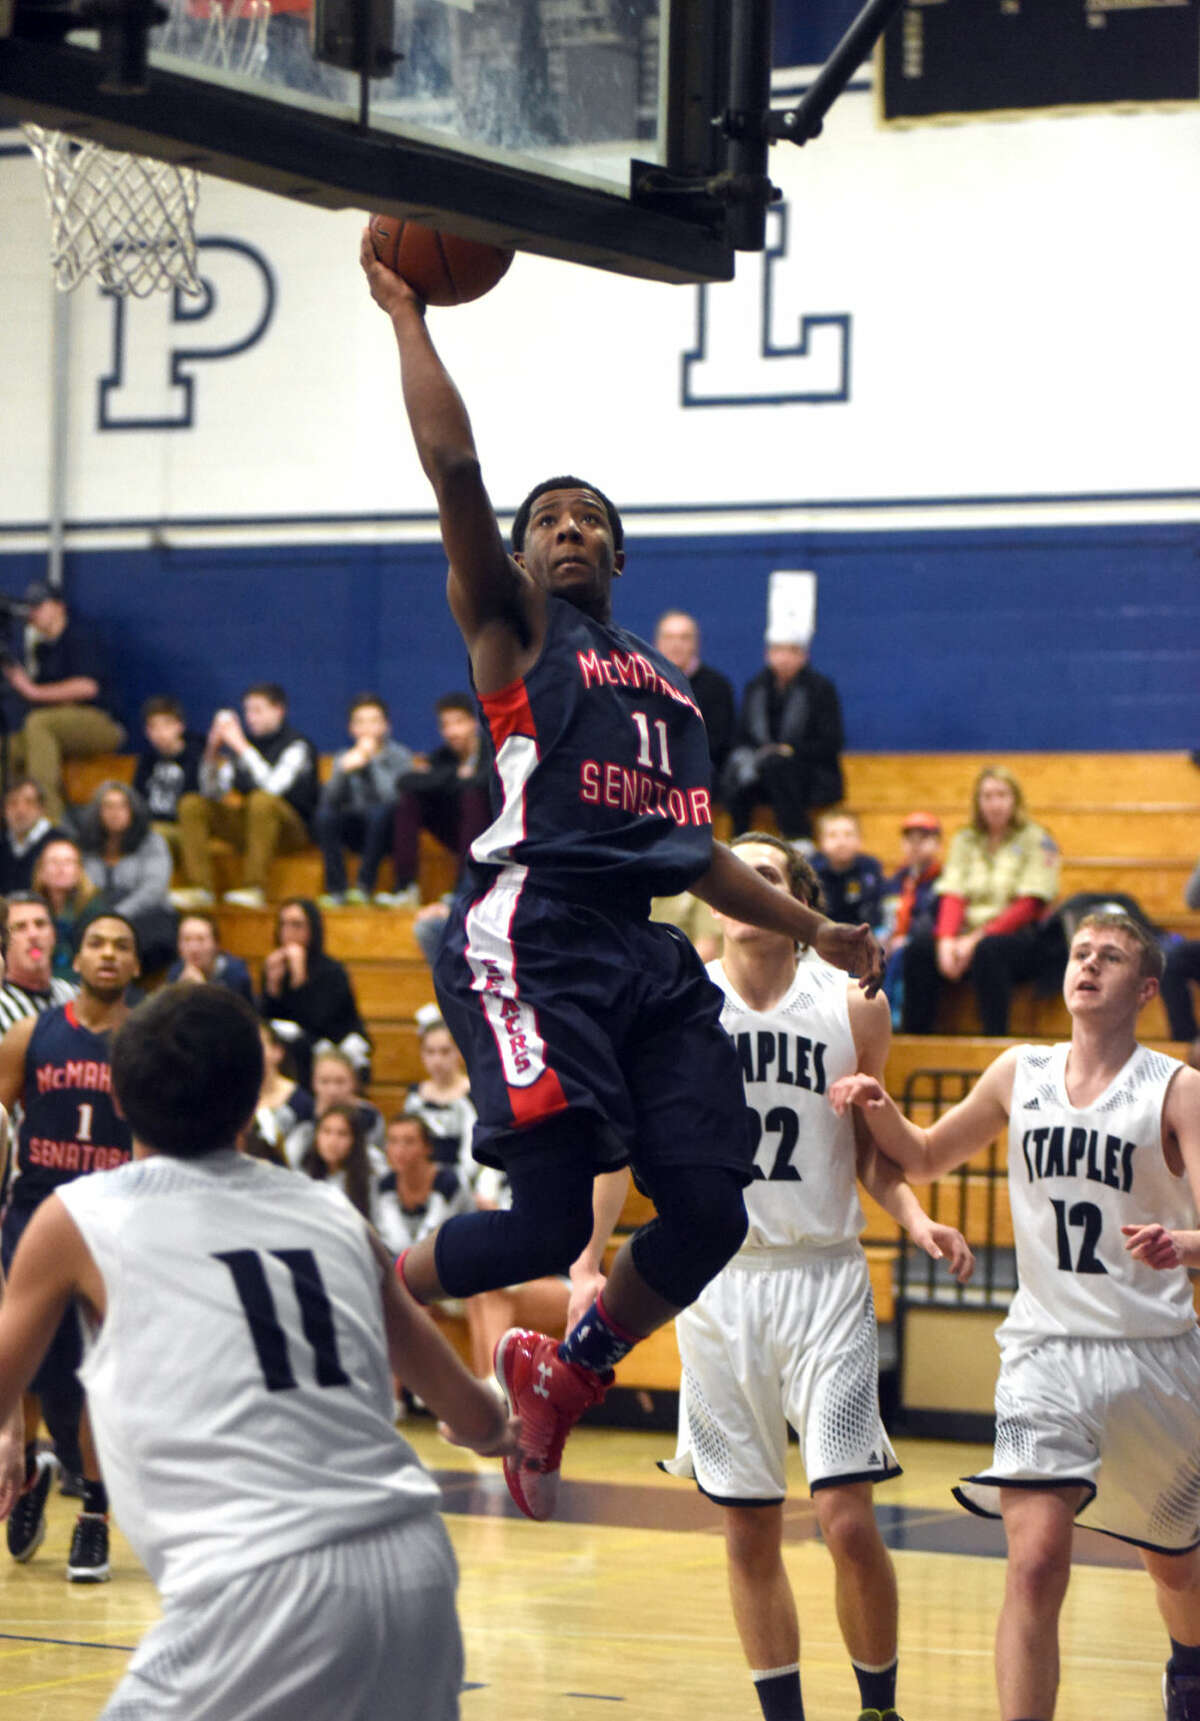 Hour photo/John Nash - McMahon's Jahmerikah-Green Younger goes up for a lay up against Staples last season.The Staples boys basketball team defeated Brien McMahon 65-54 on Thursday, Jan. 22, 2015.